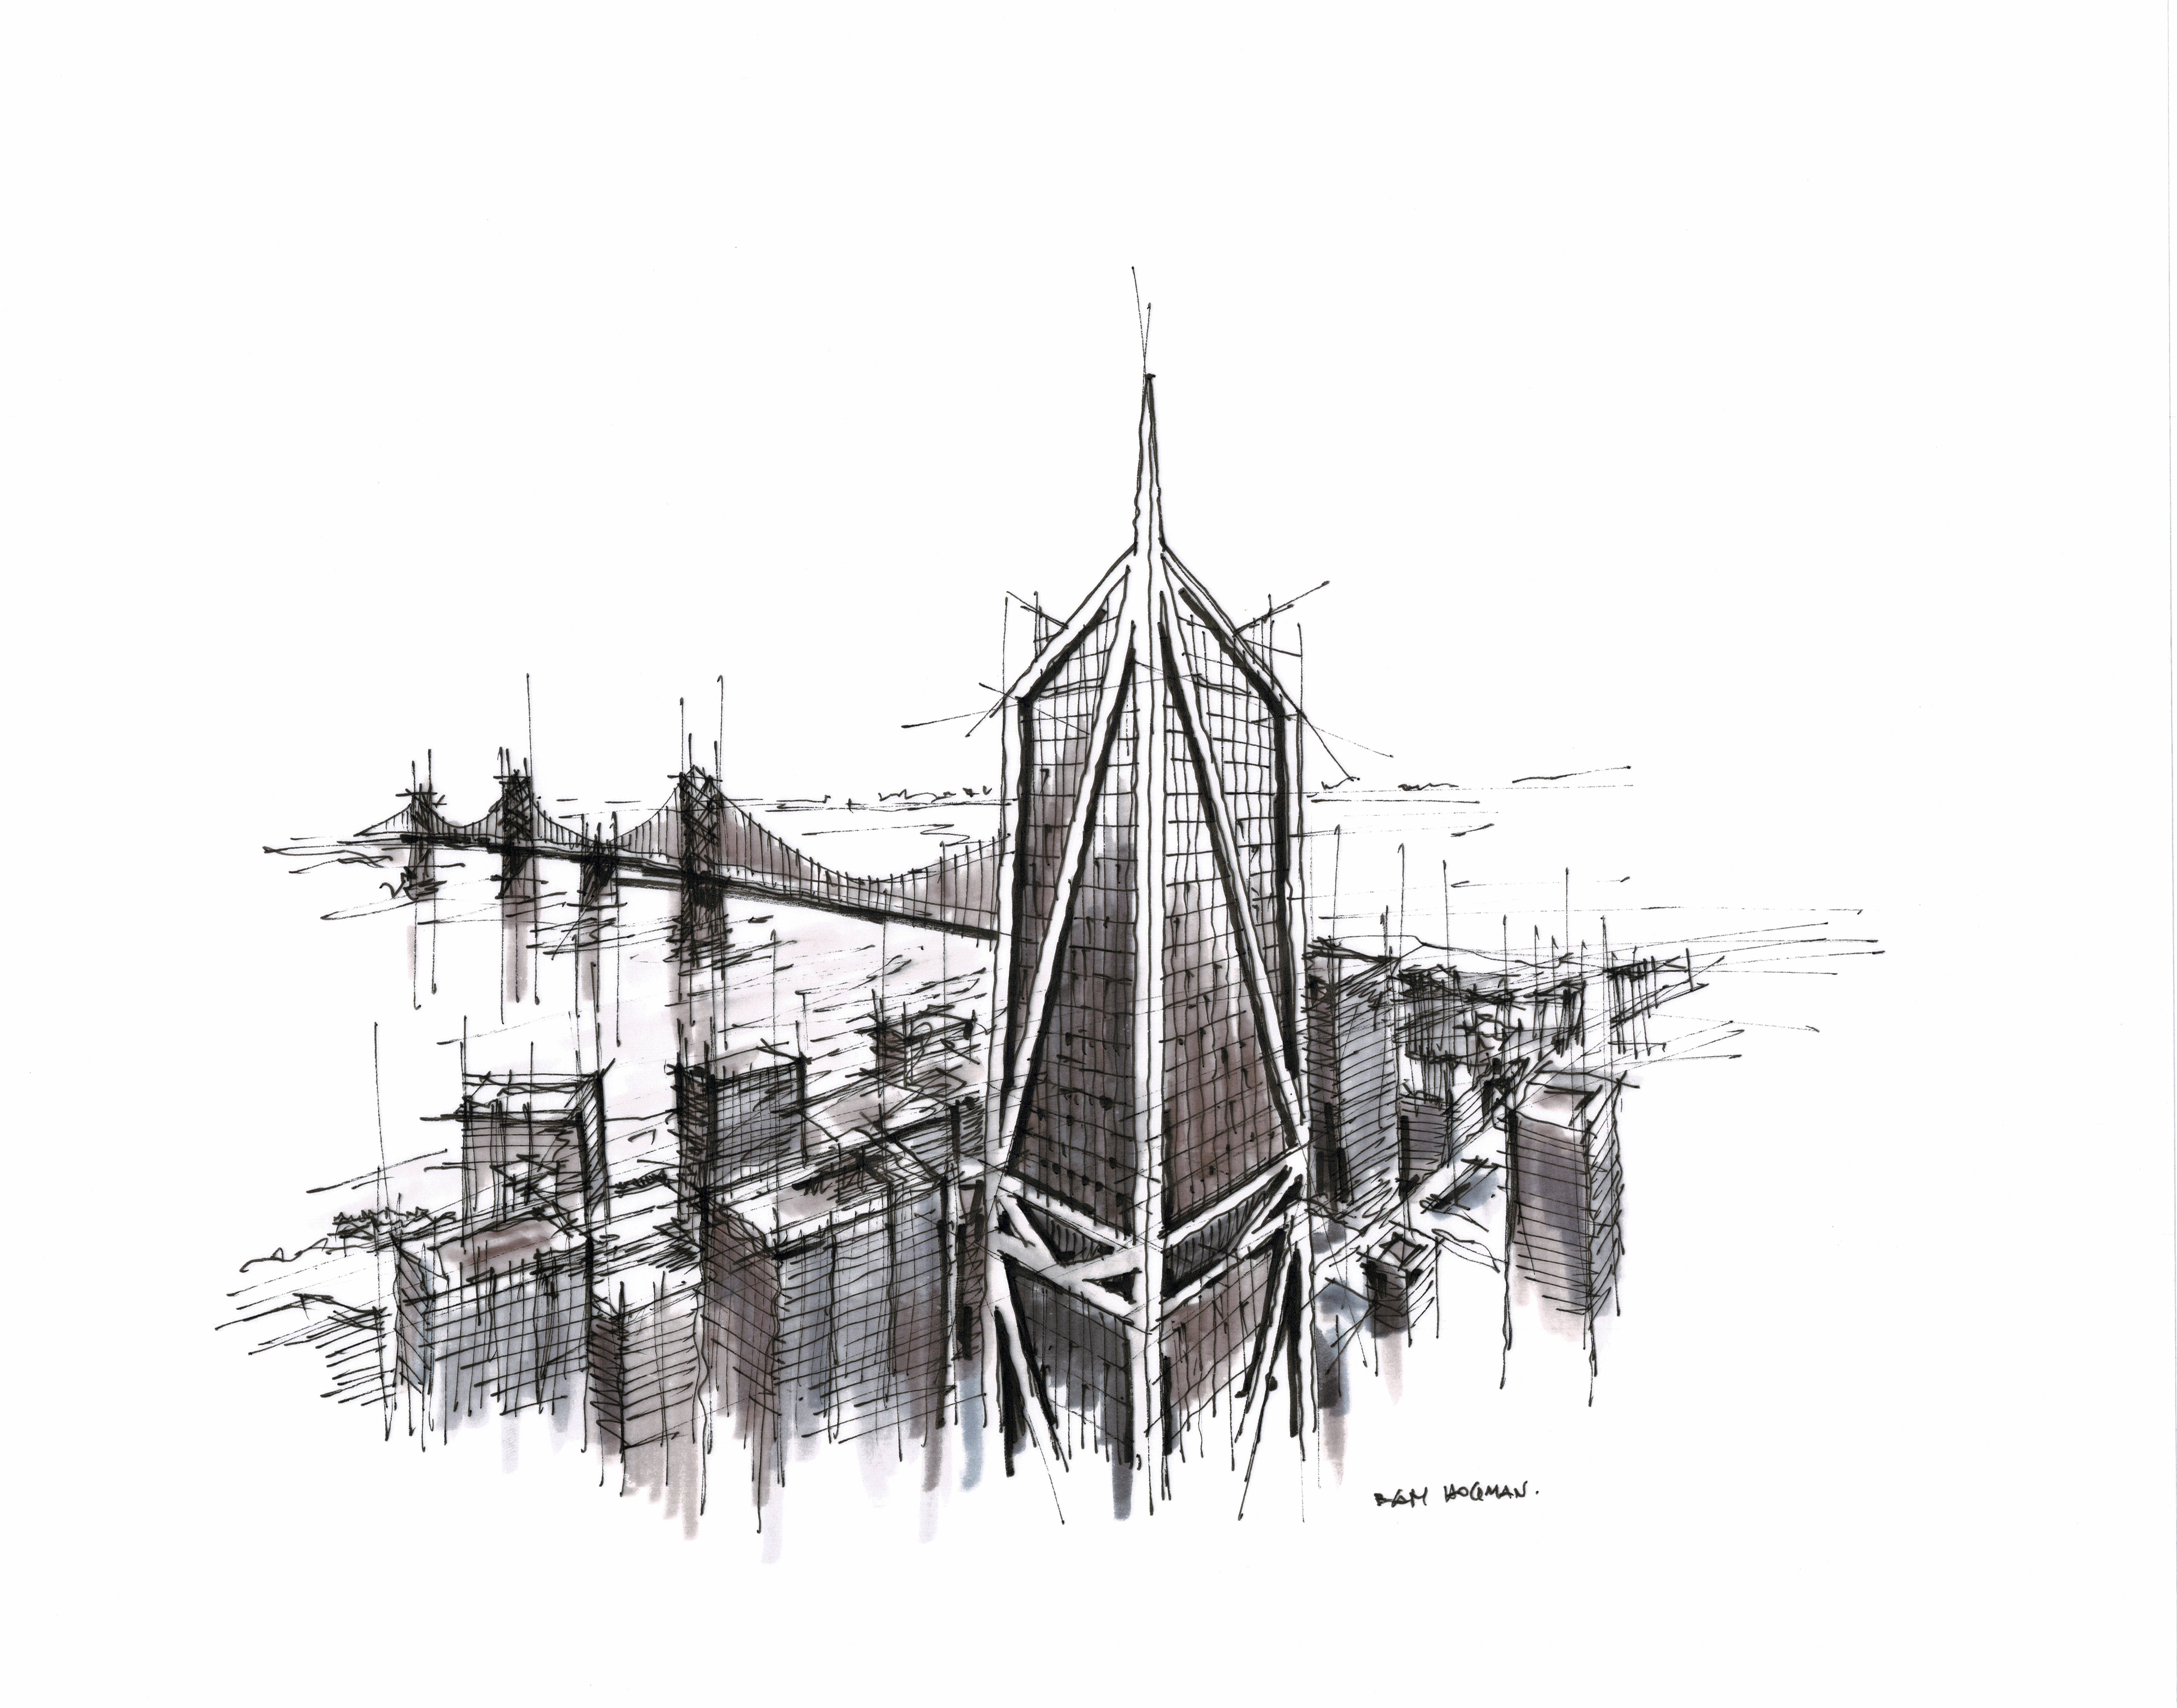 Black and white sketch of 181 Fremont by Dan Hogman. Aerial view of downtown San Francisco and The Golden Gate Bridge.